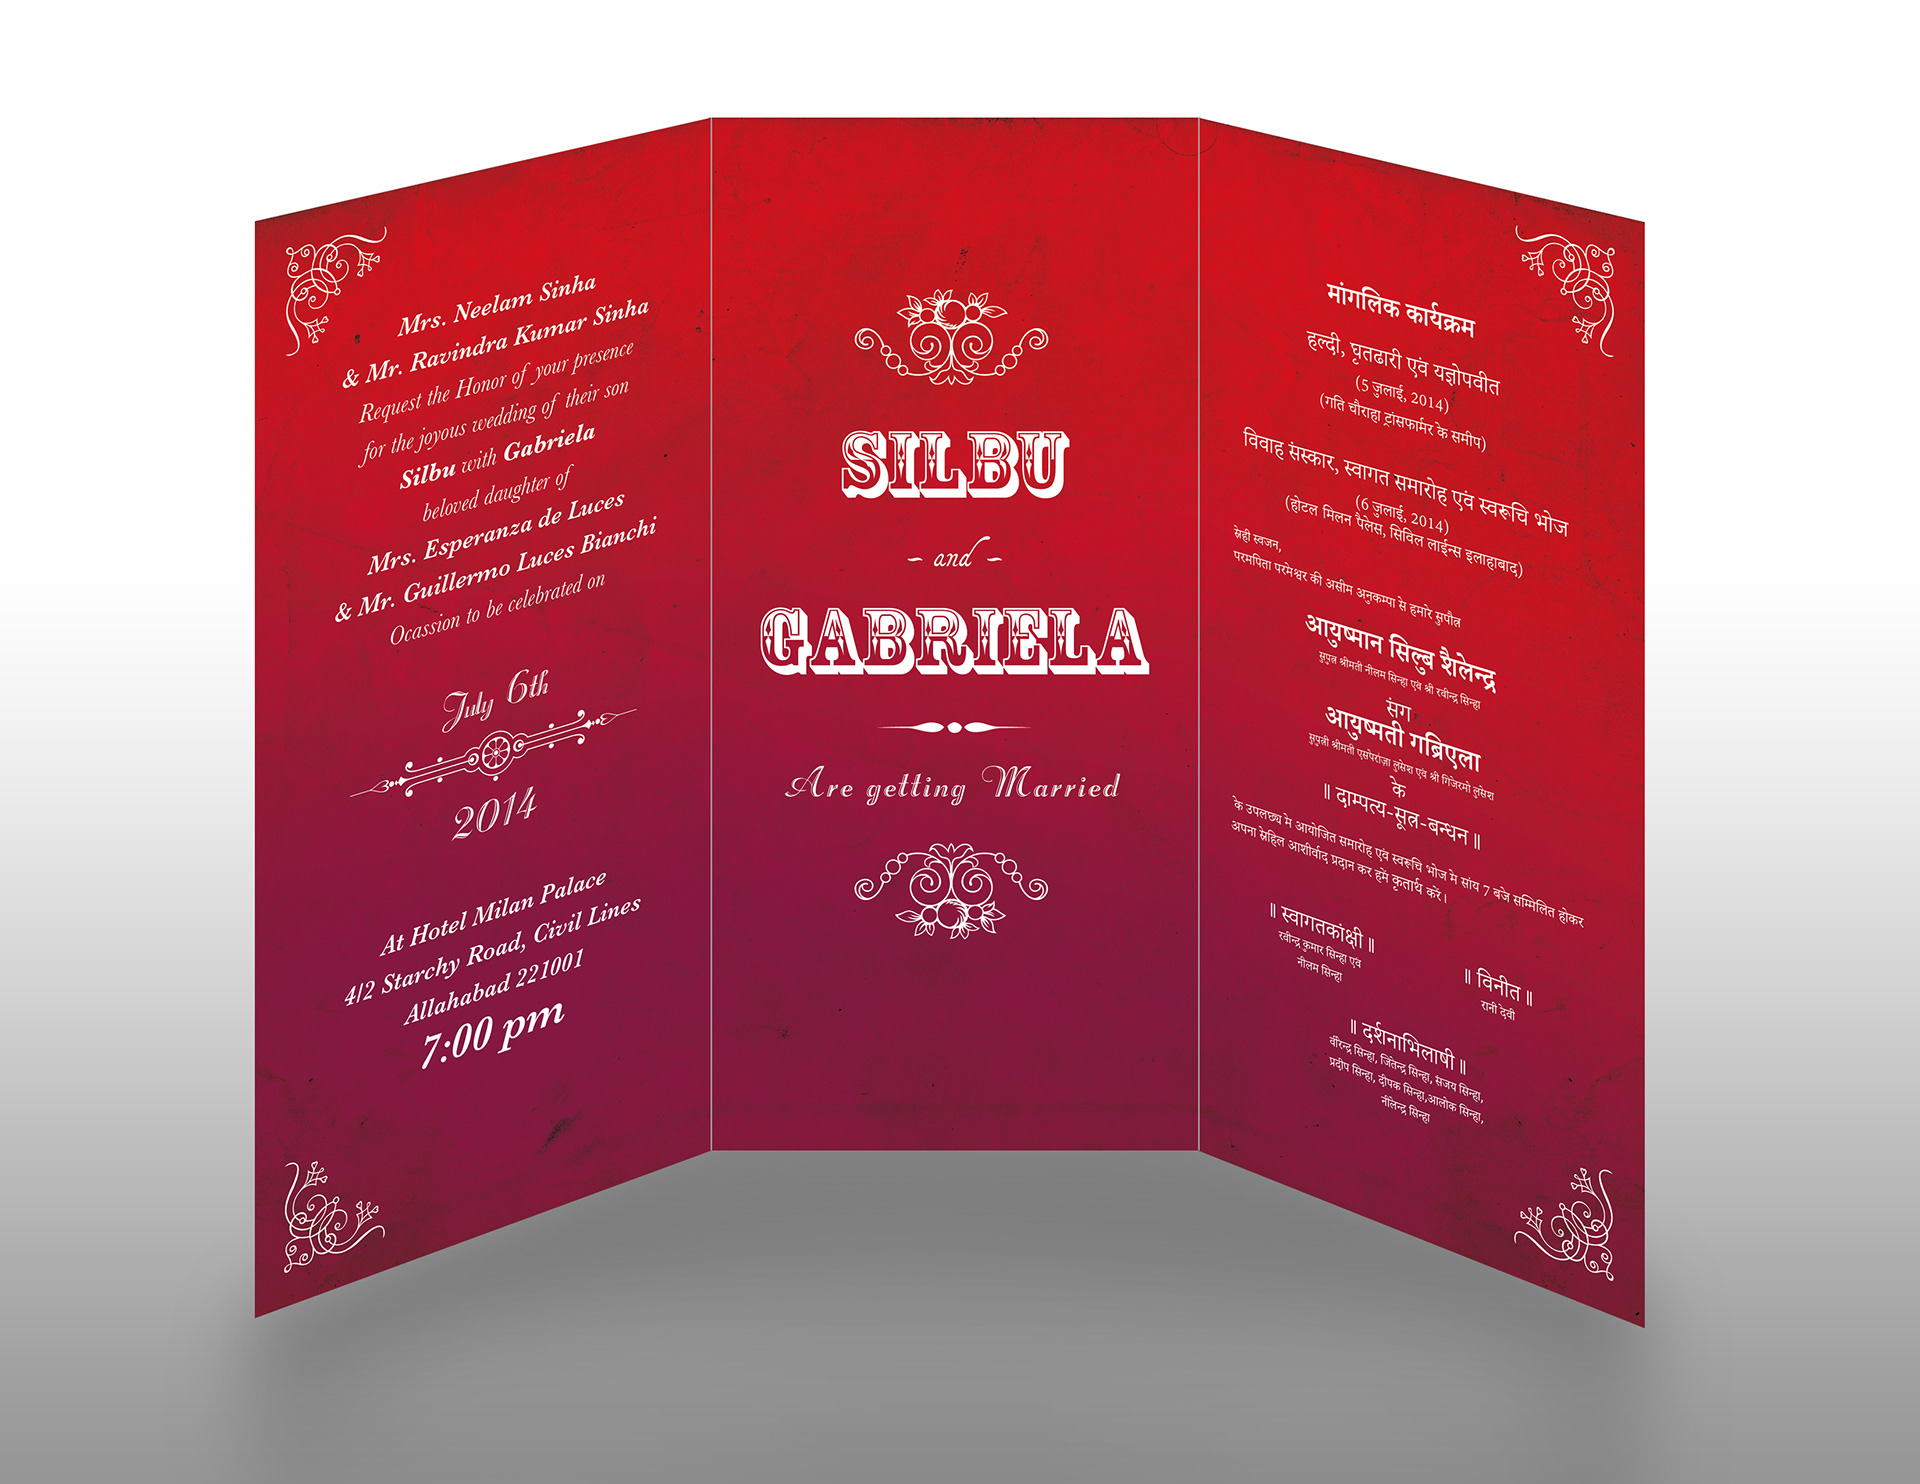 Maria Luces - S&G Wedding Invitations